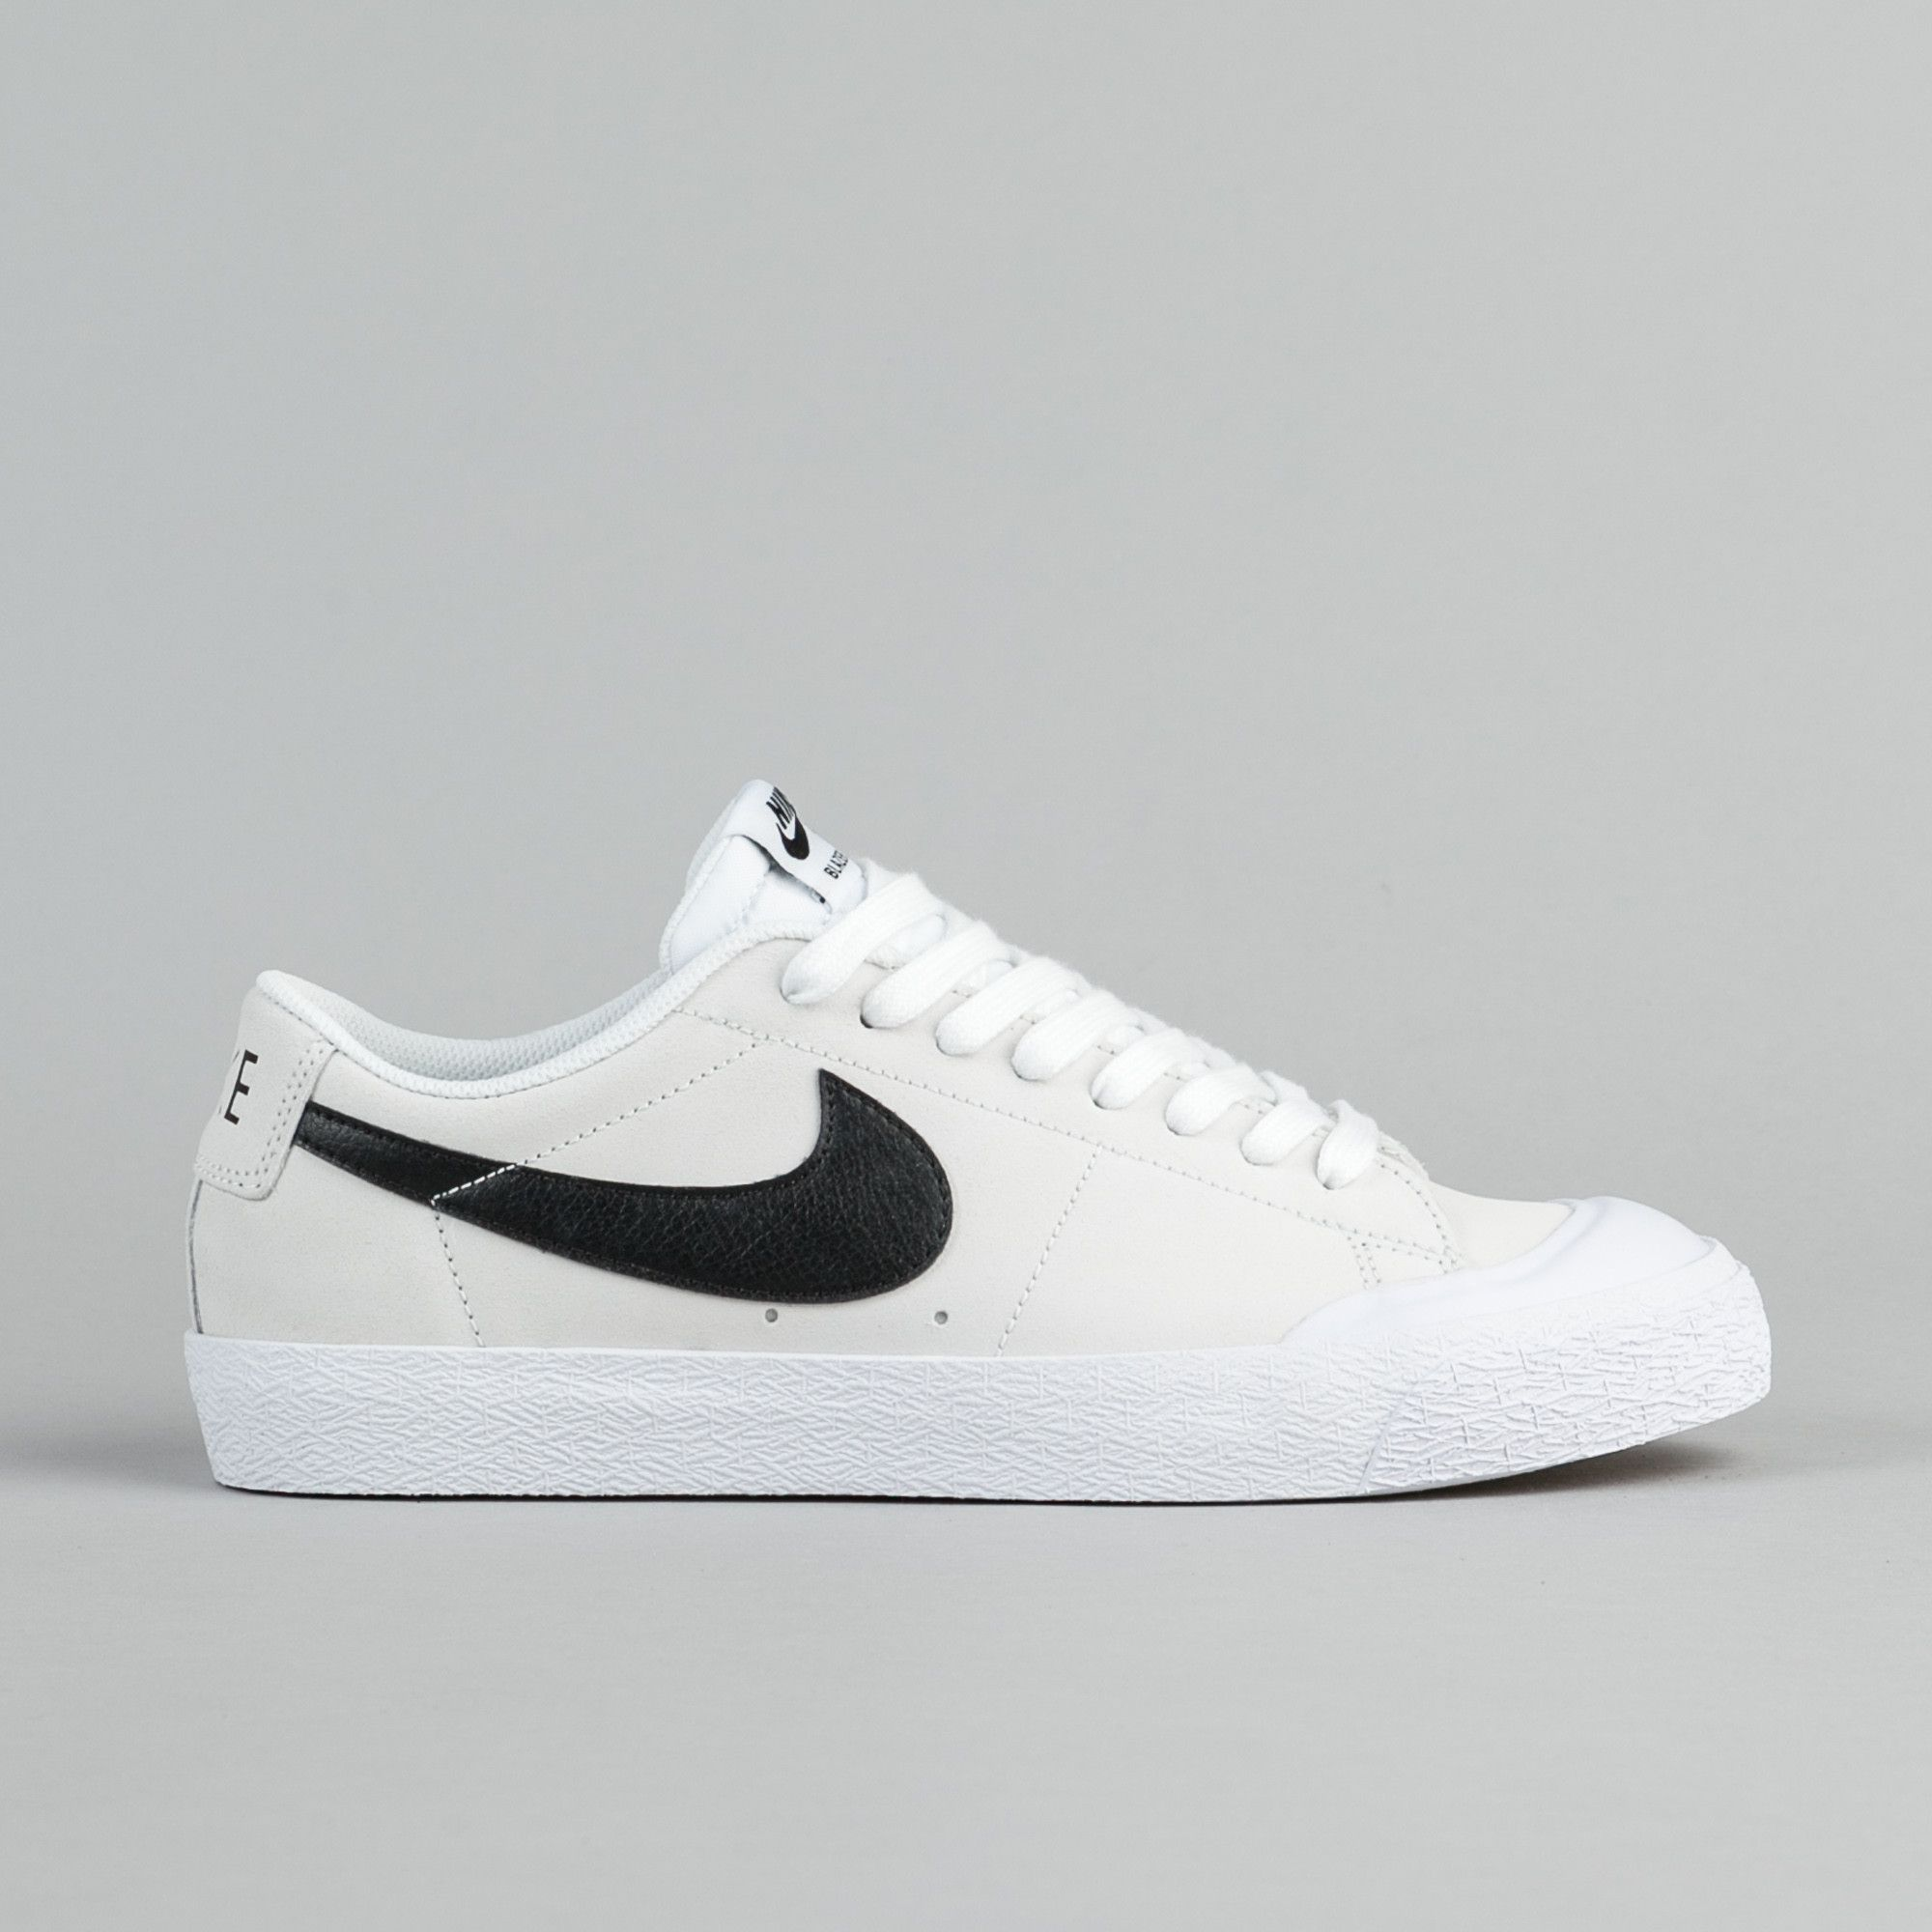 Marques Chaussure homme Nike homme Blazer Low Summit White/Summit White